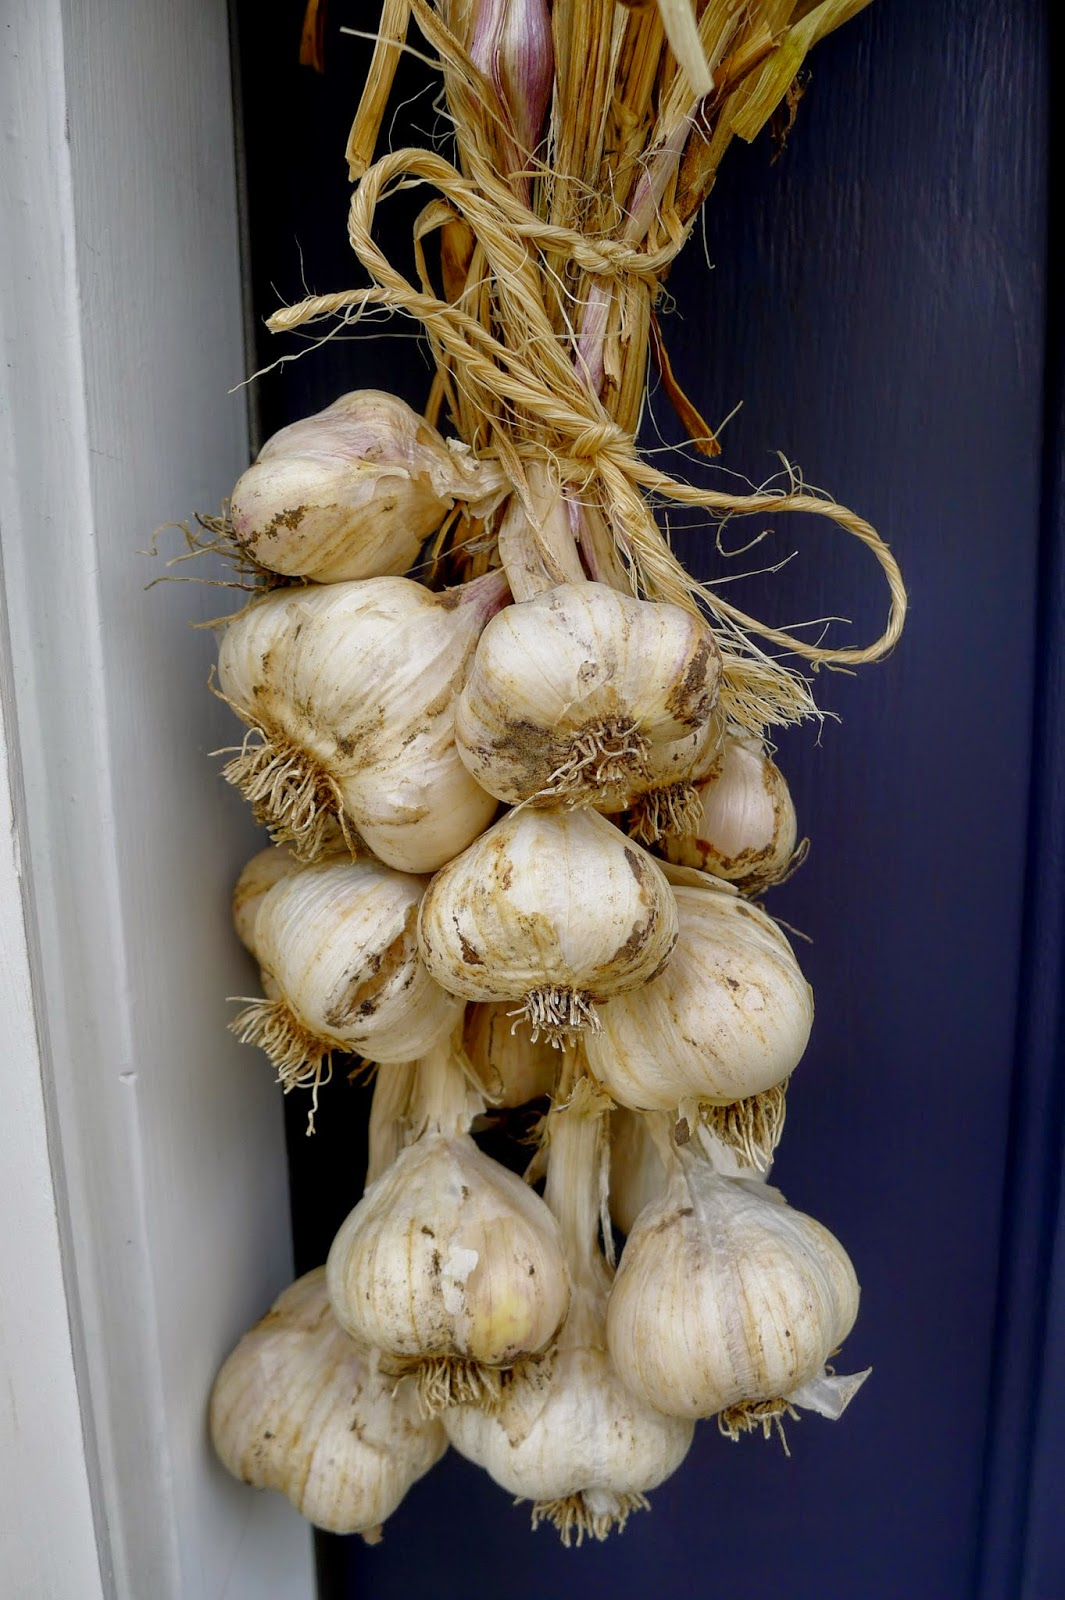 Cured garlic, preserving, urban farming, gardening